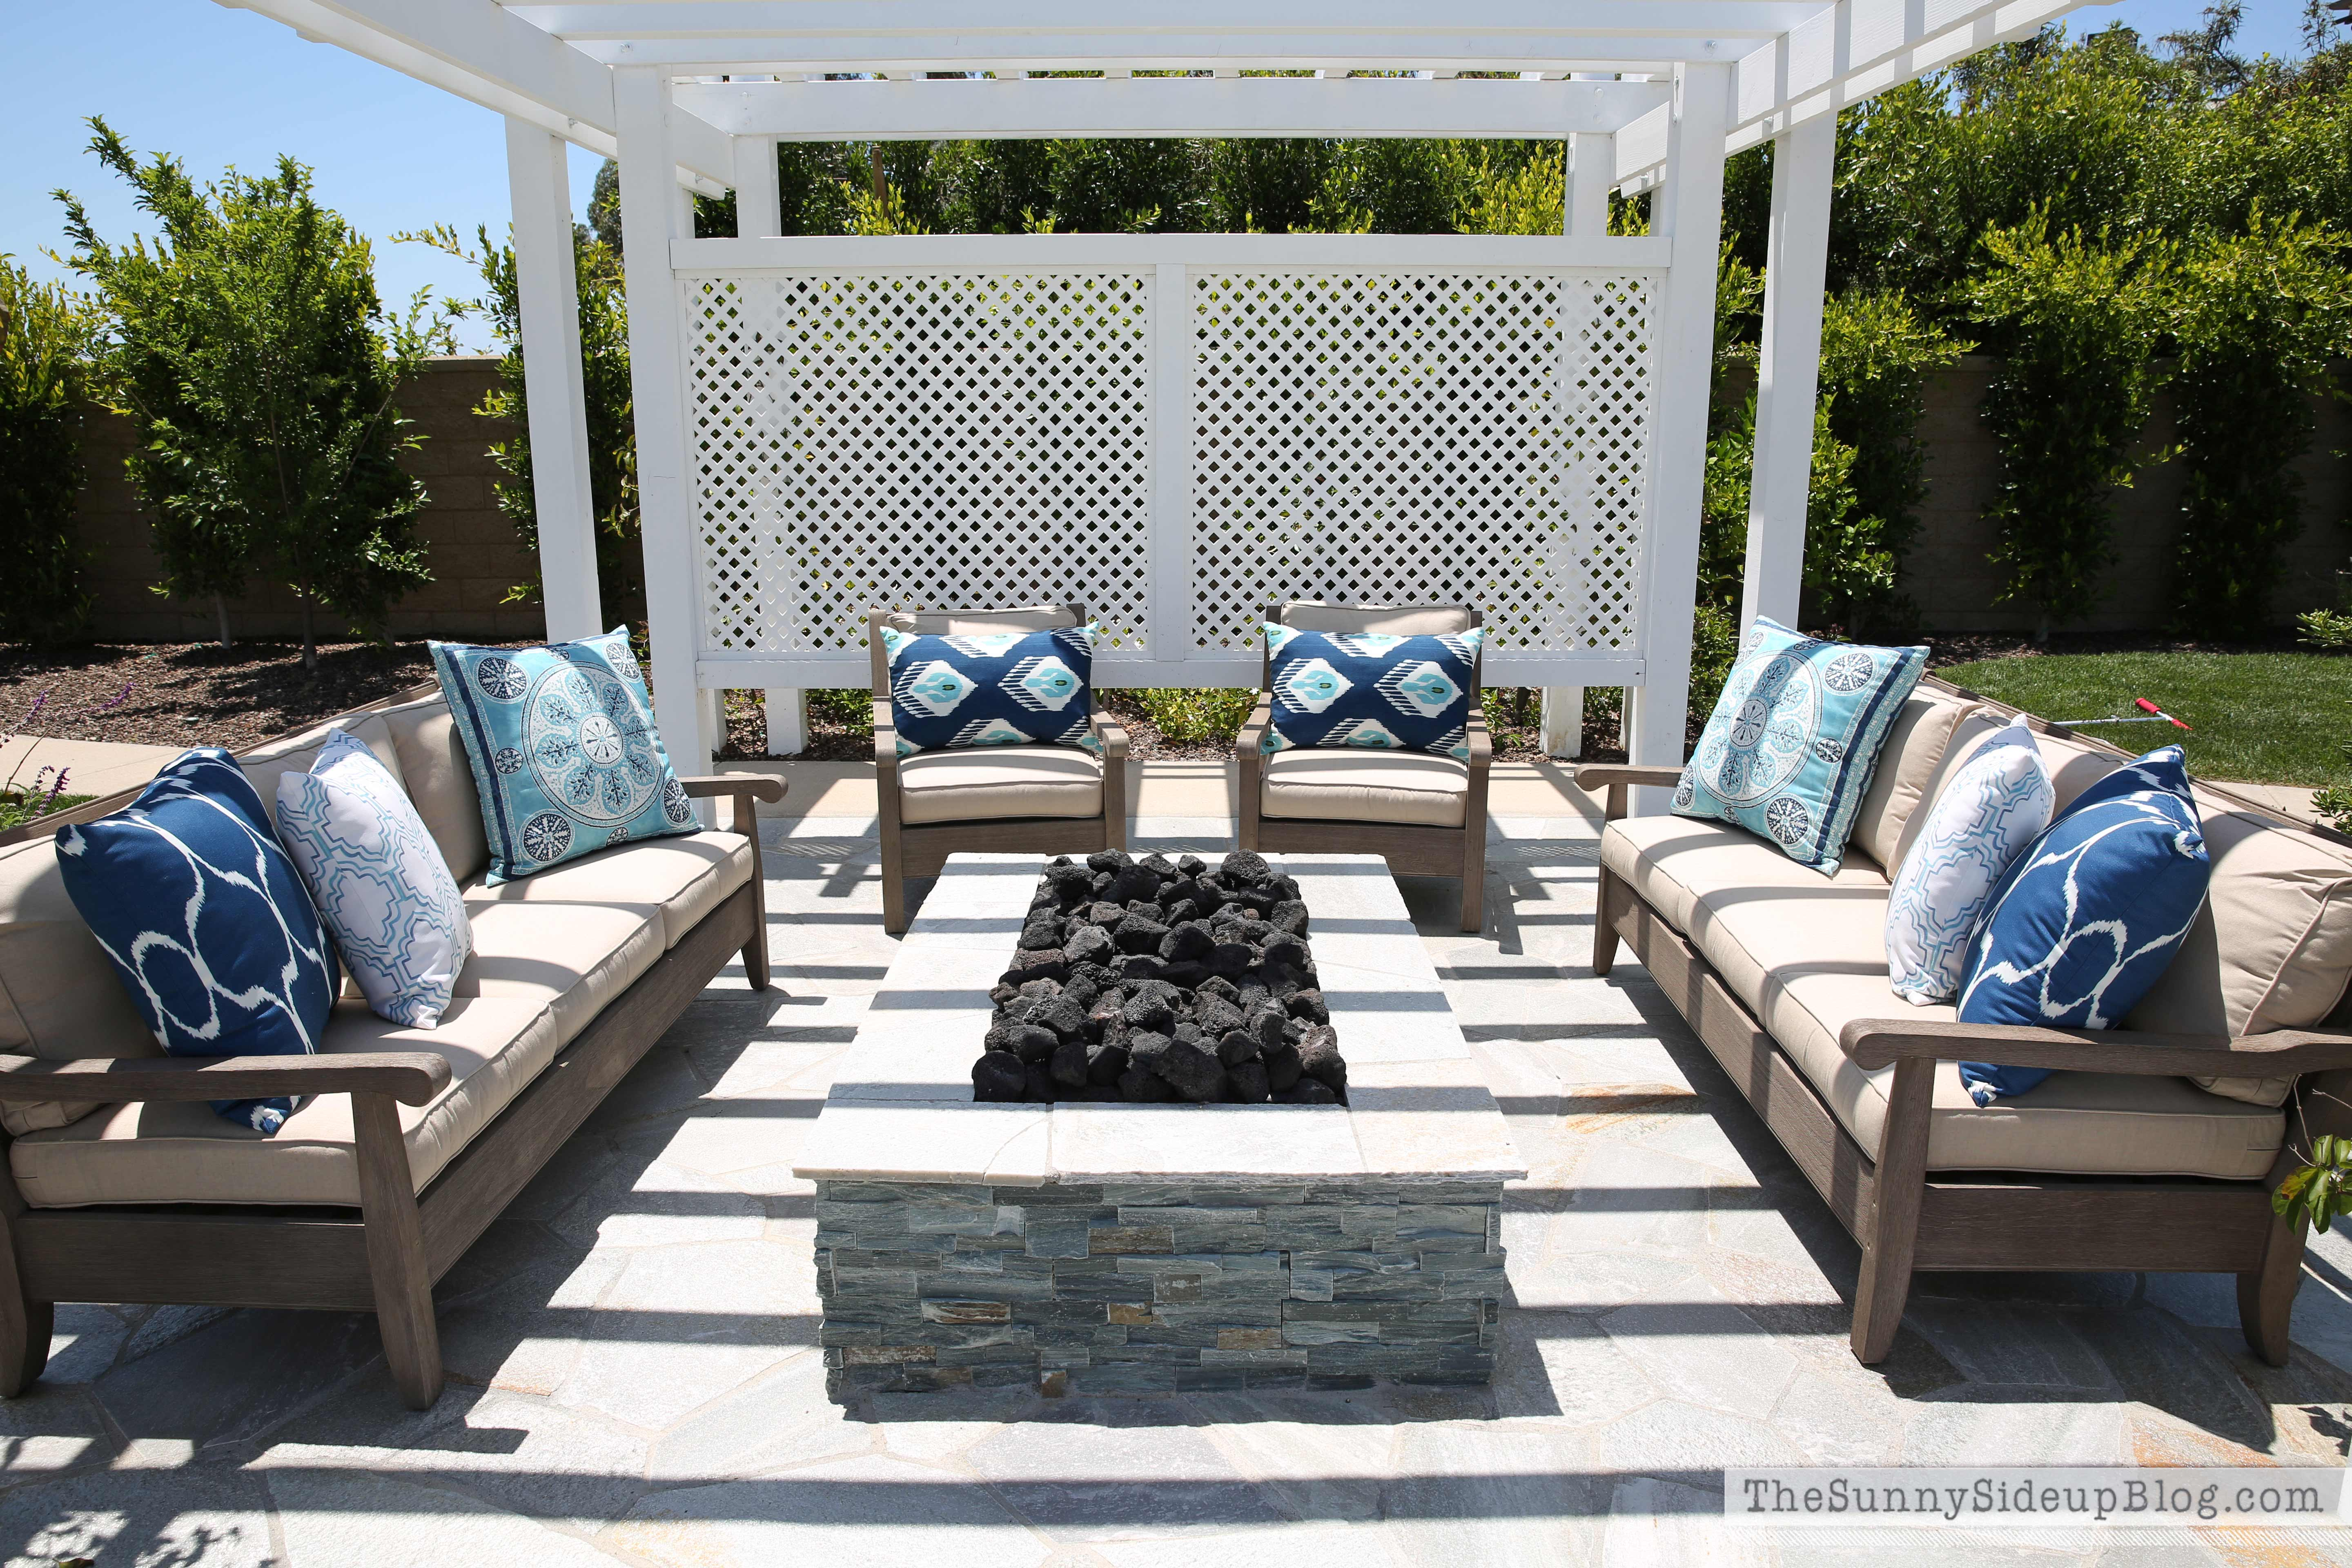 Cool outdoor entertaining